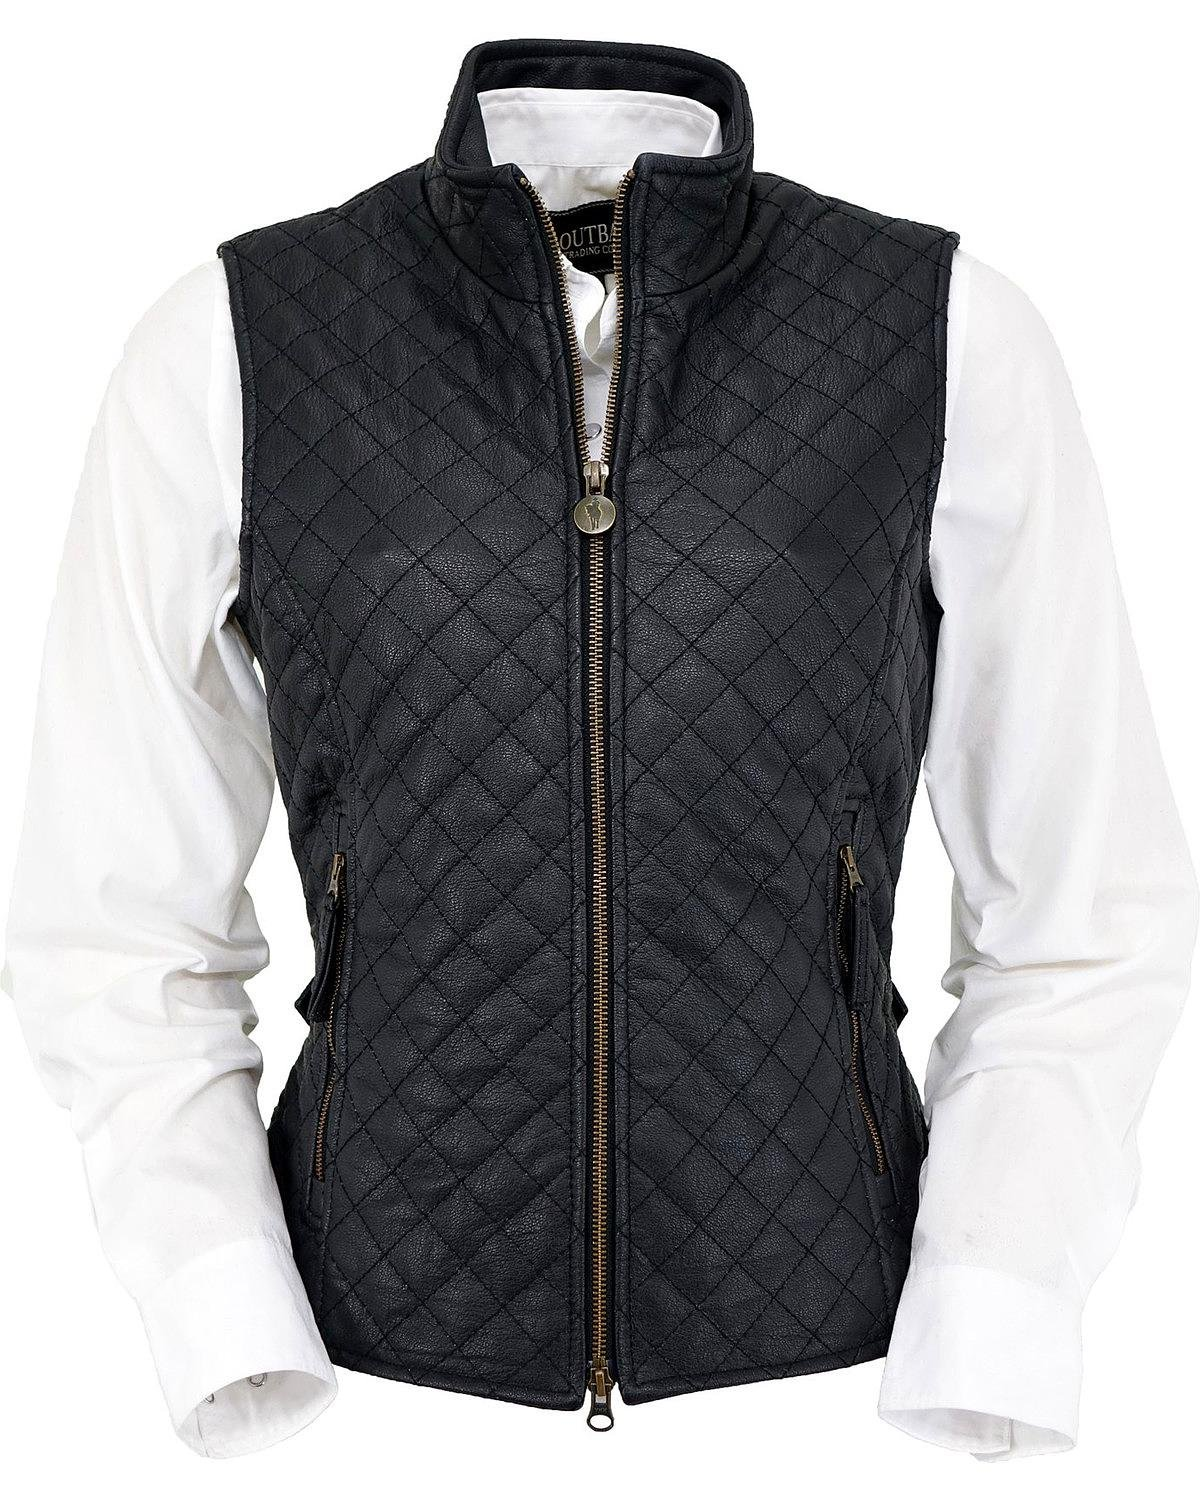 Outback Trading Co Women's Co. Bunbury Quilted Leather Vest Black Medium by Outback Trading